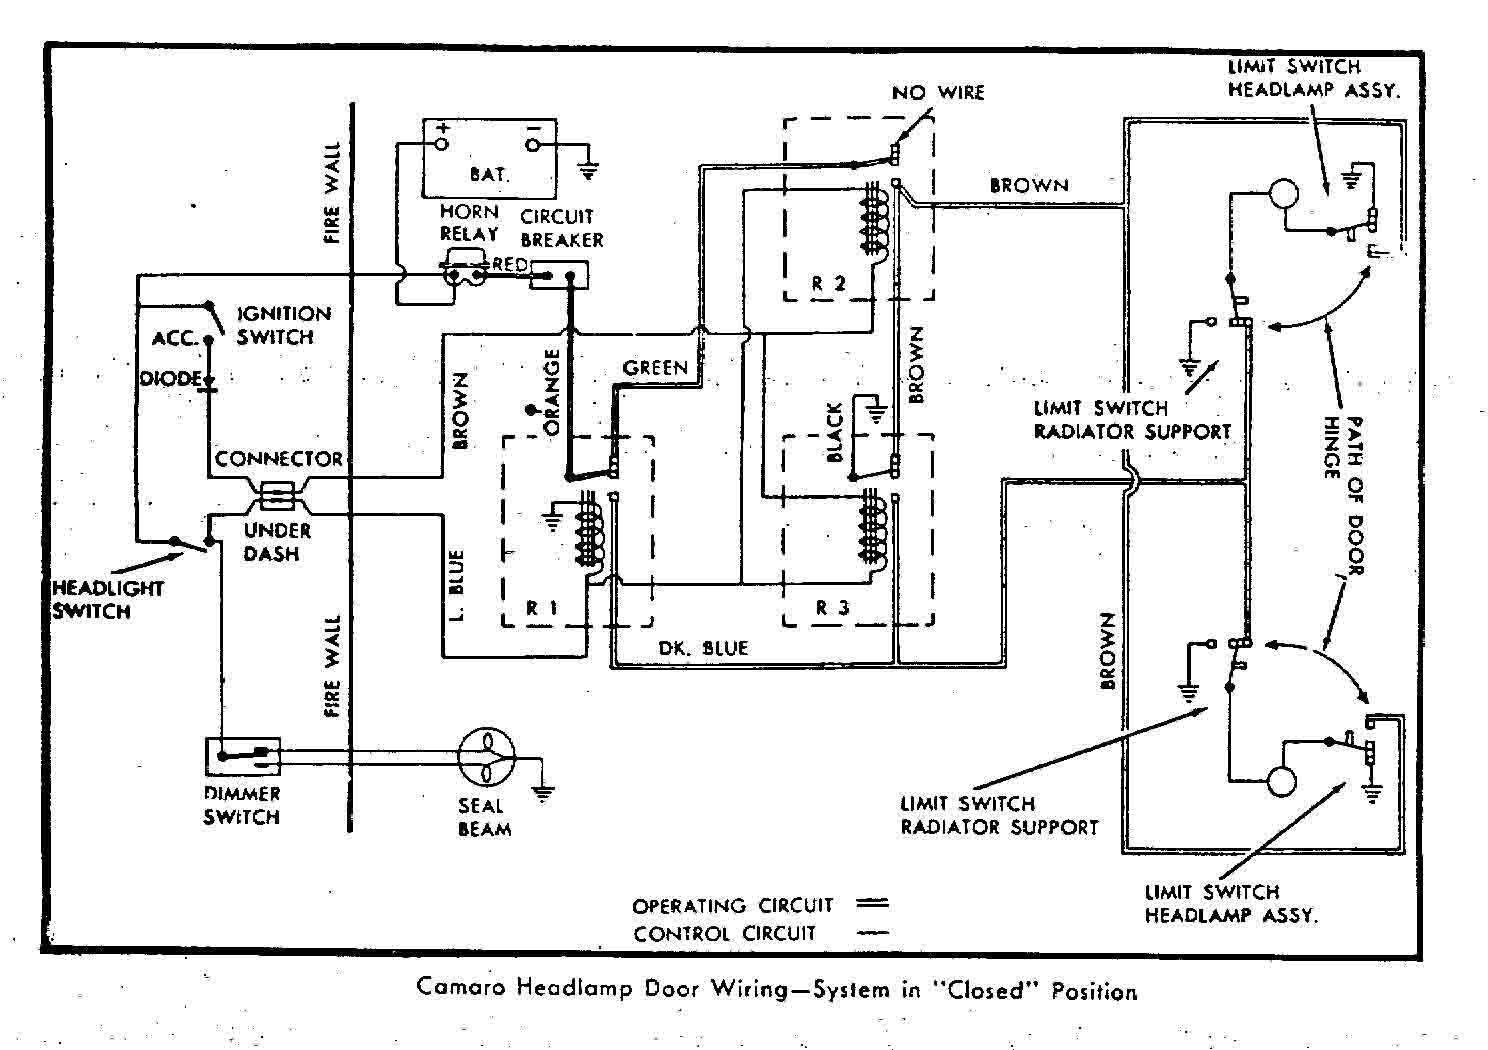 1967 camaro wiring diagram free - vw eos wiring diagram for wiring diagram  schematics  wiring diagram schematics